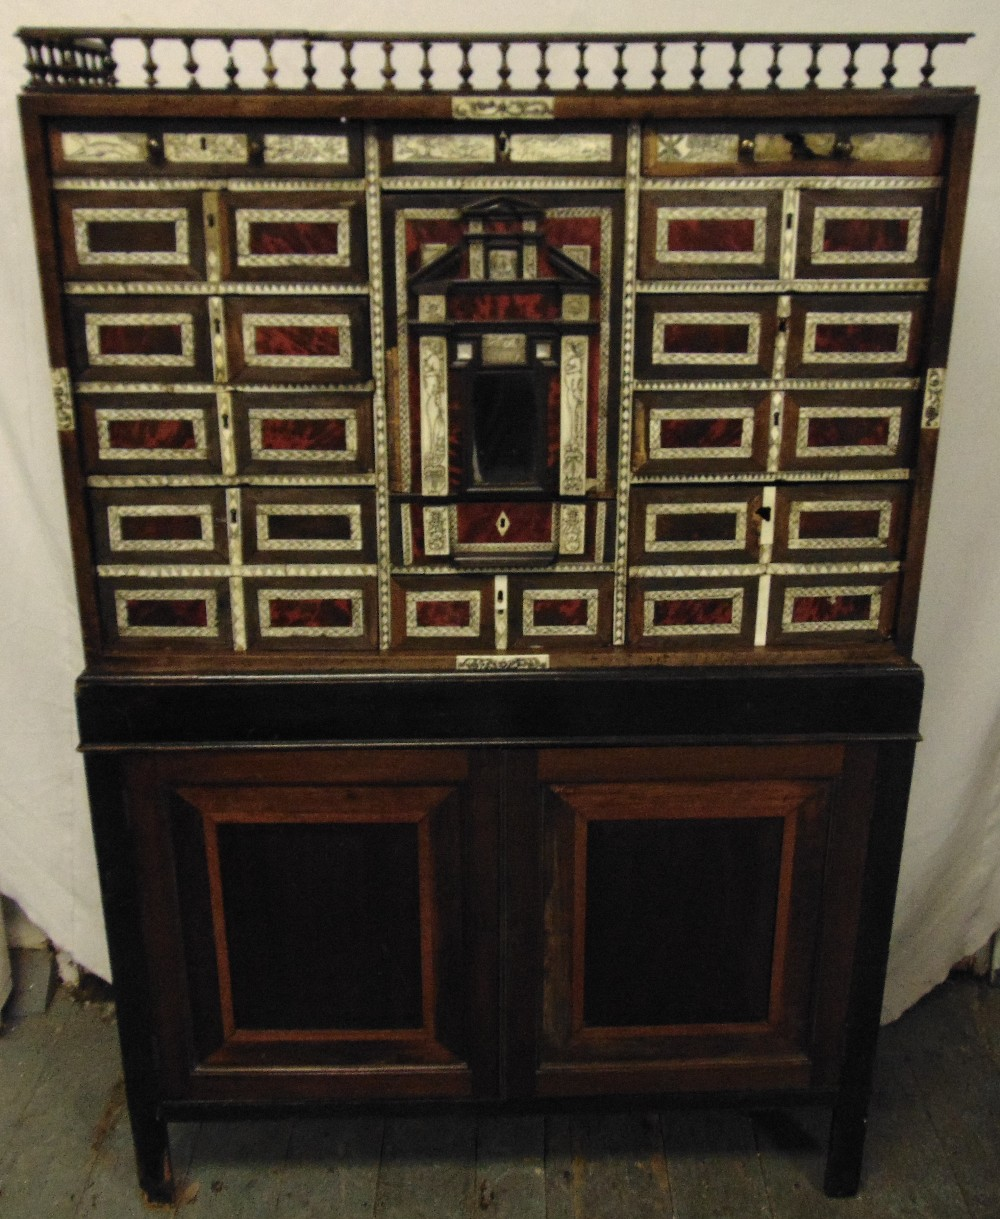 Lot 12 - A late 19th century rectangular collectors cabinet, with galleried top, bone and tortoiseshell